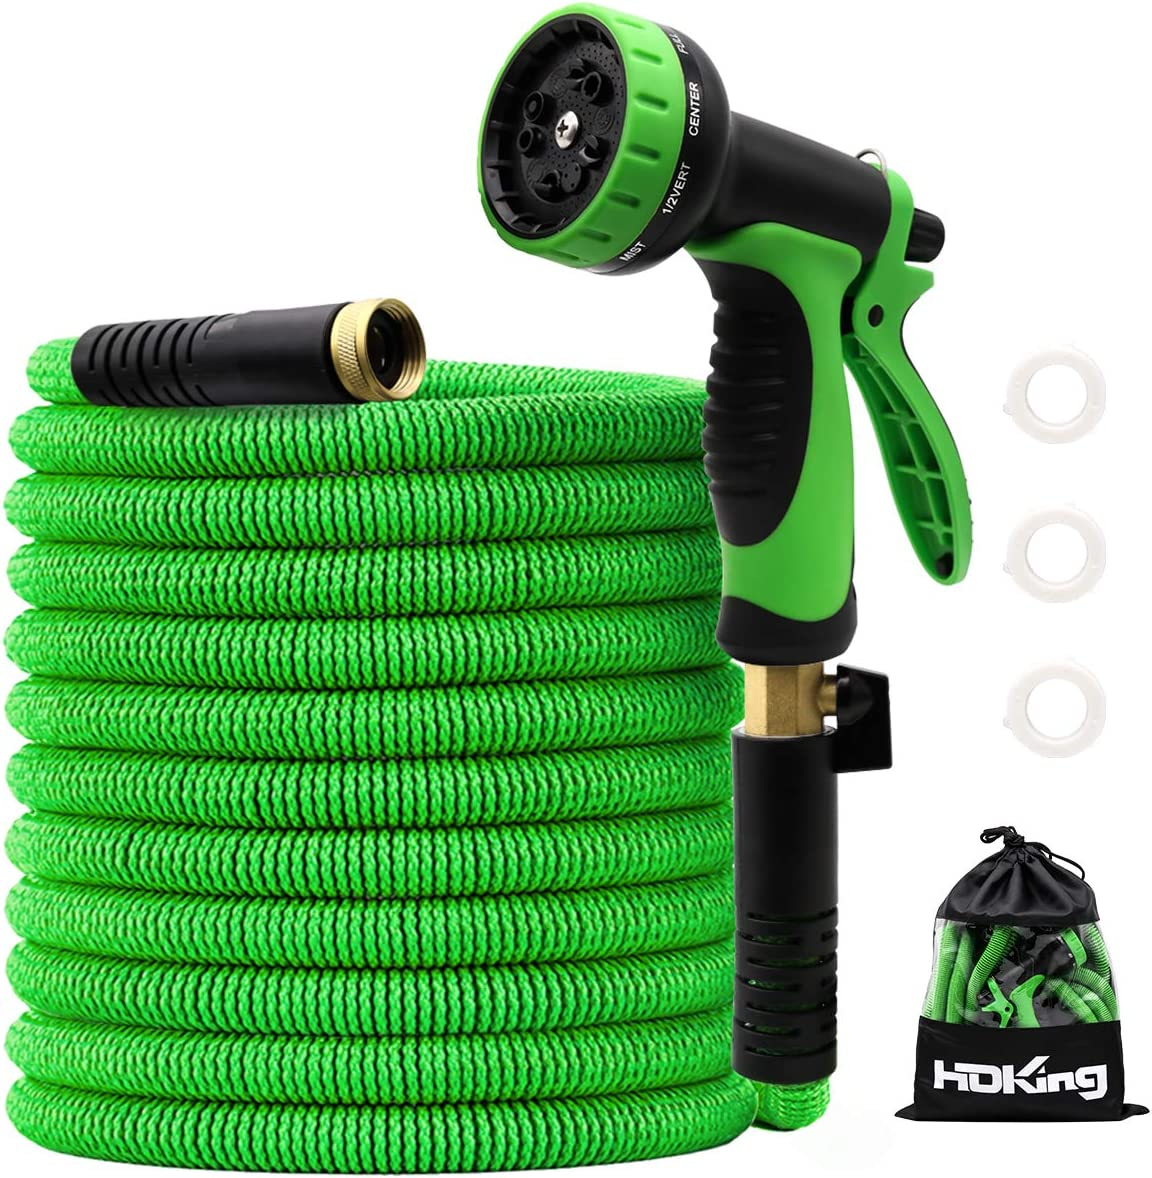 100FT Garden Hose Expandable, Water Collapsible Hose with 10 Function Spray Nozzle, Triple Latex Core, 3/4